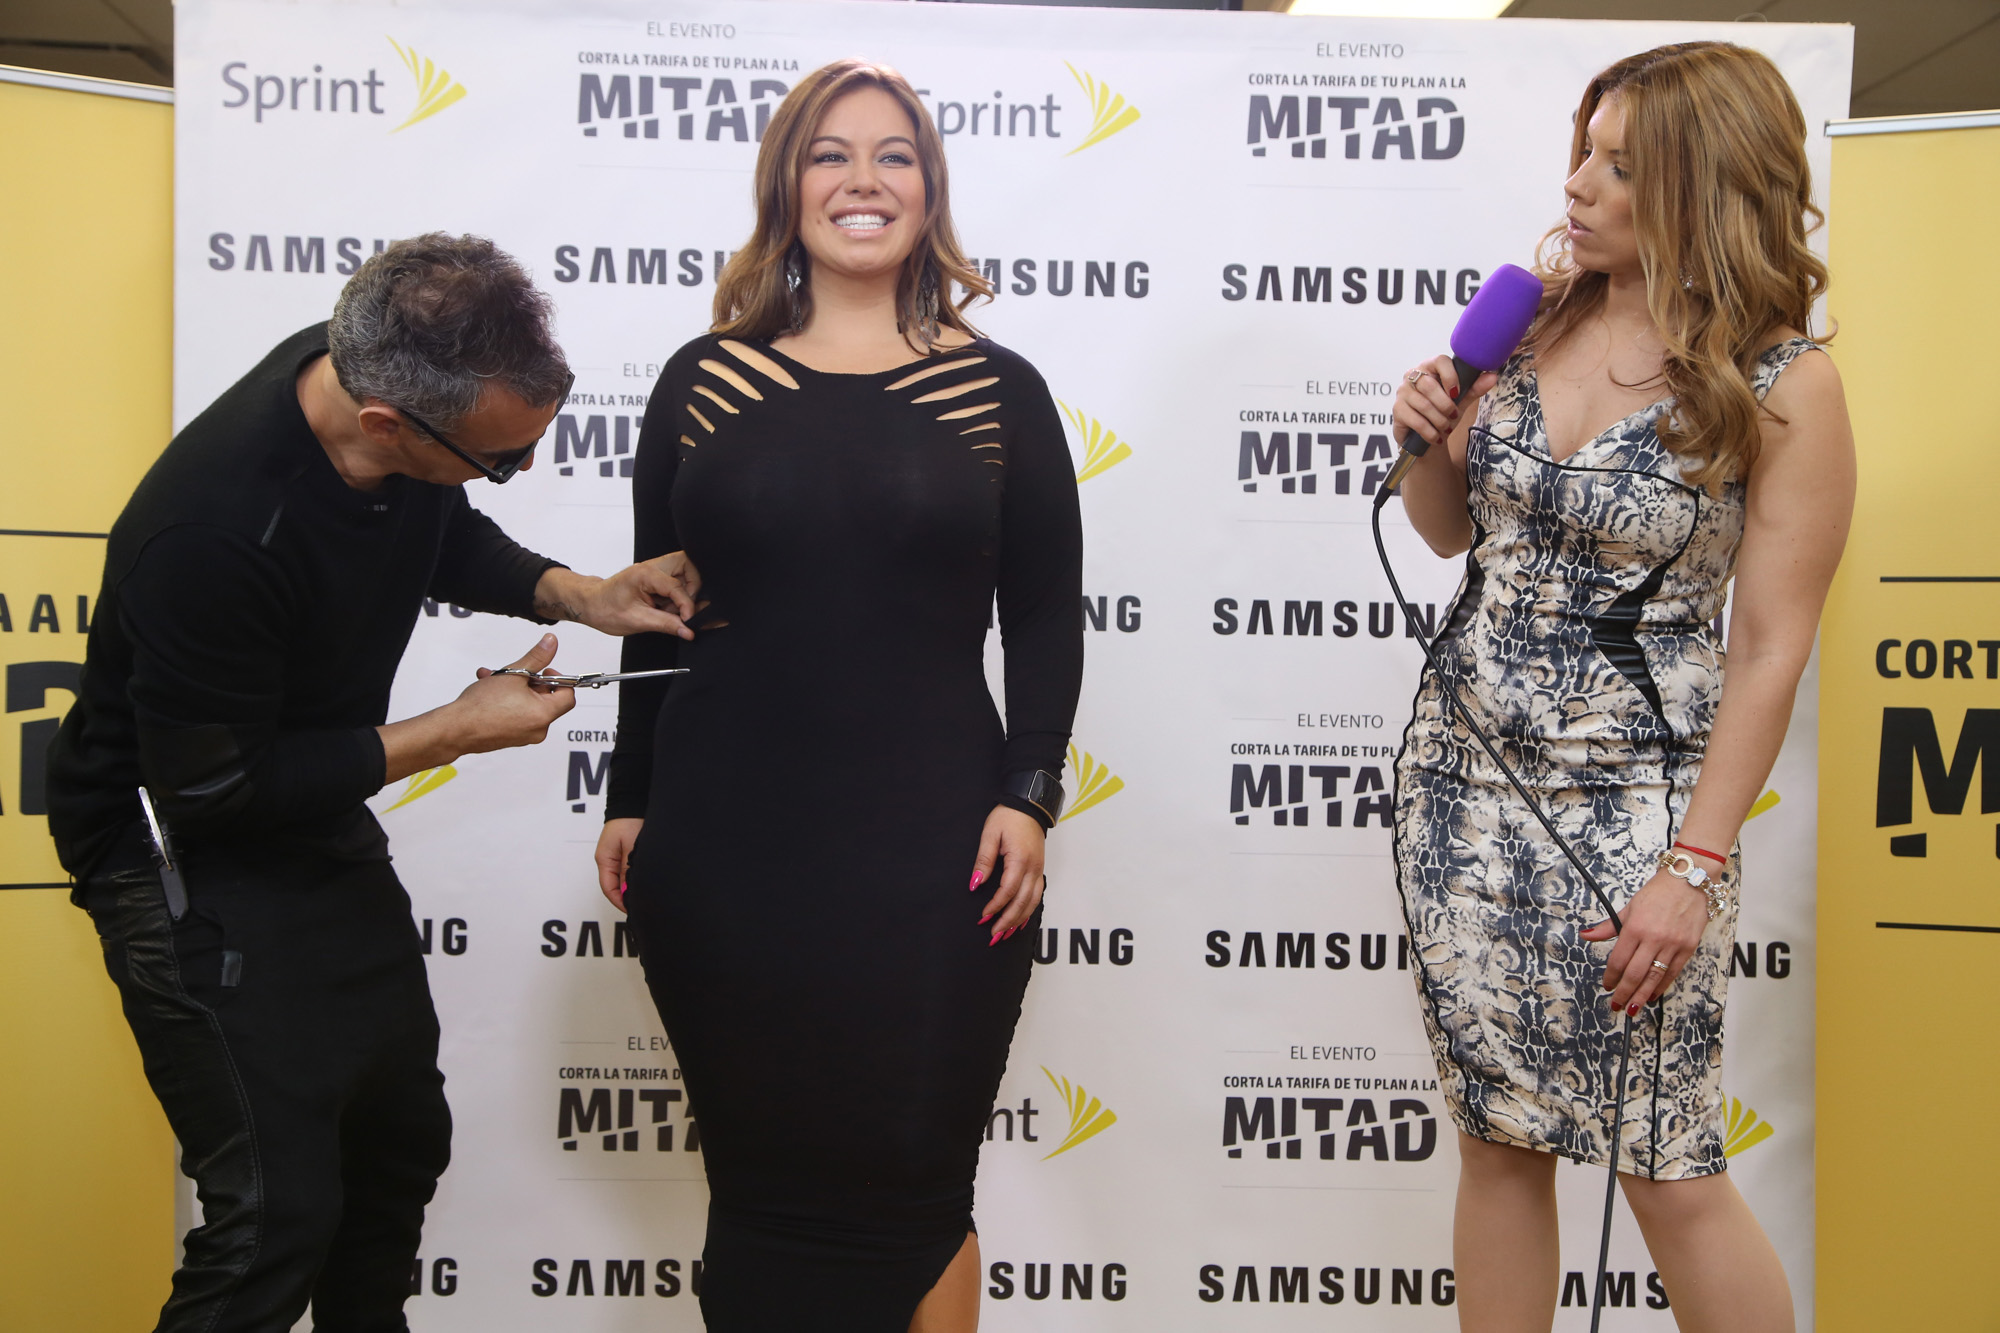 In collaboration with Sprint and Samsung, Chiquis Rivera smiles during the transition of her dress for the Sprint Cut Your Bill in Half Event.